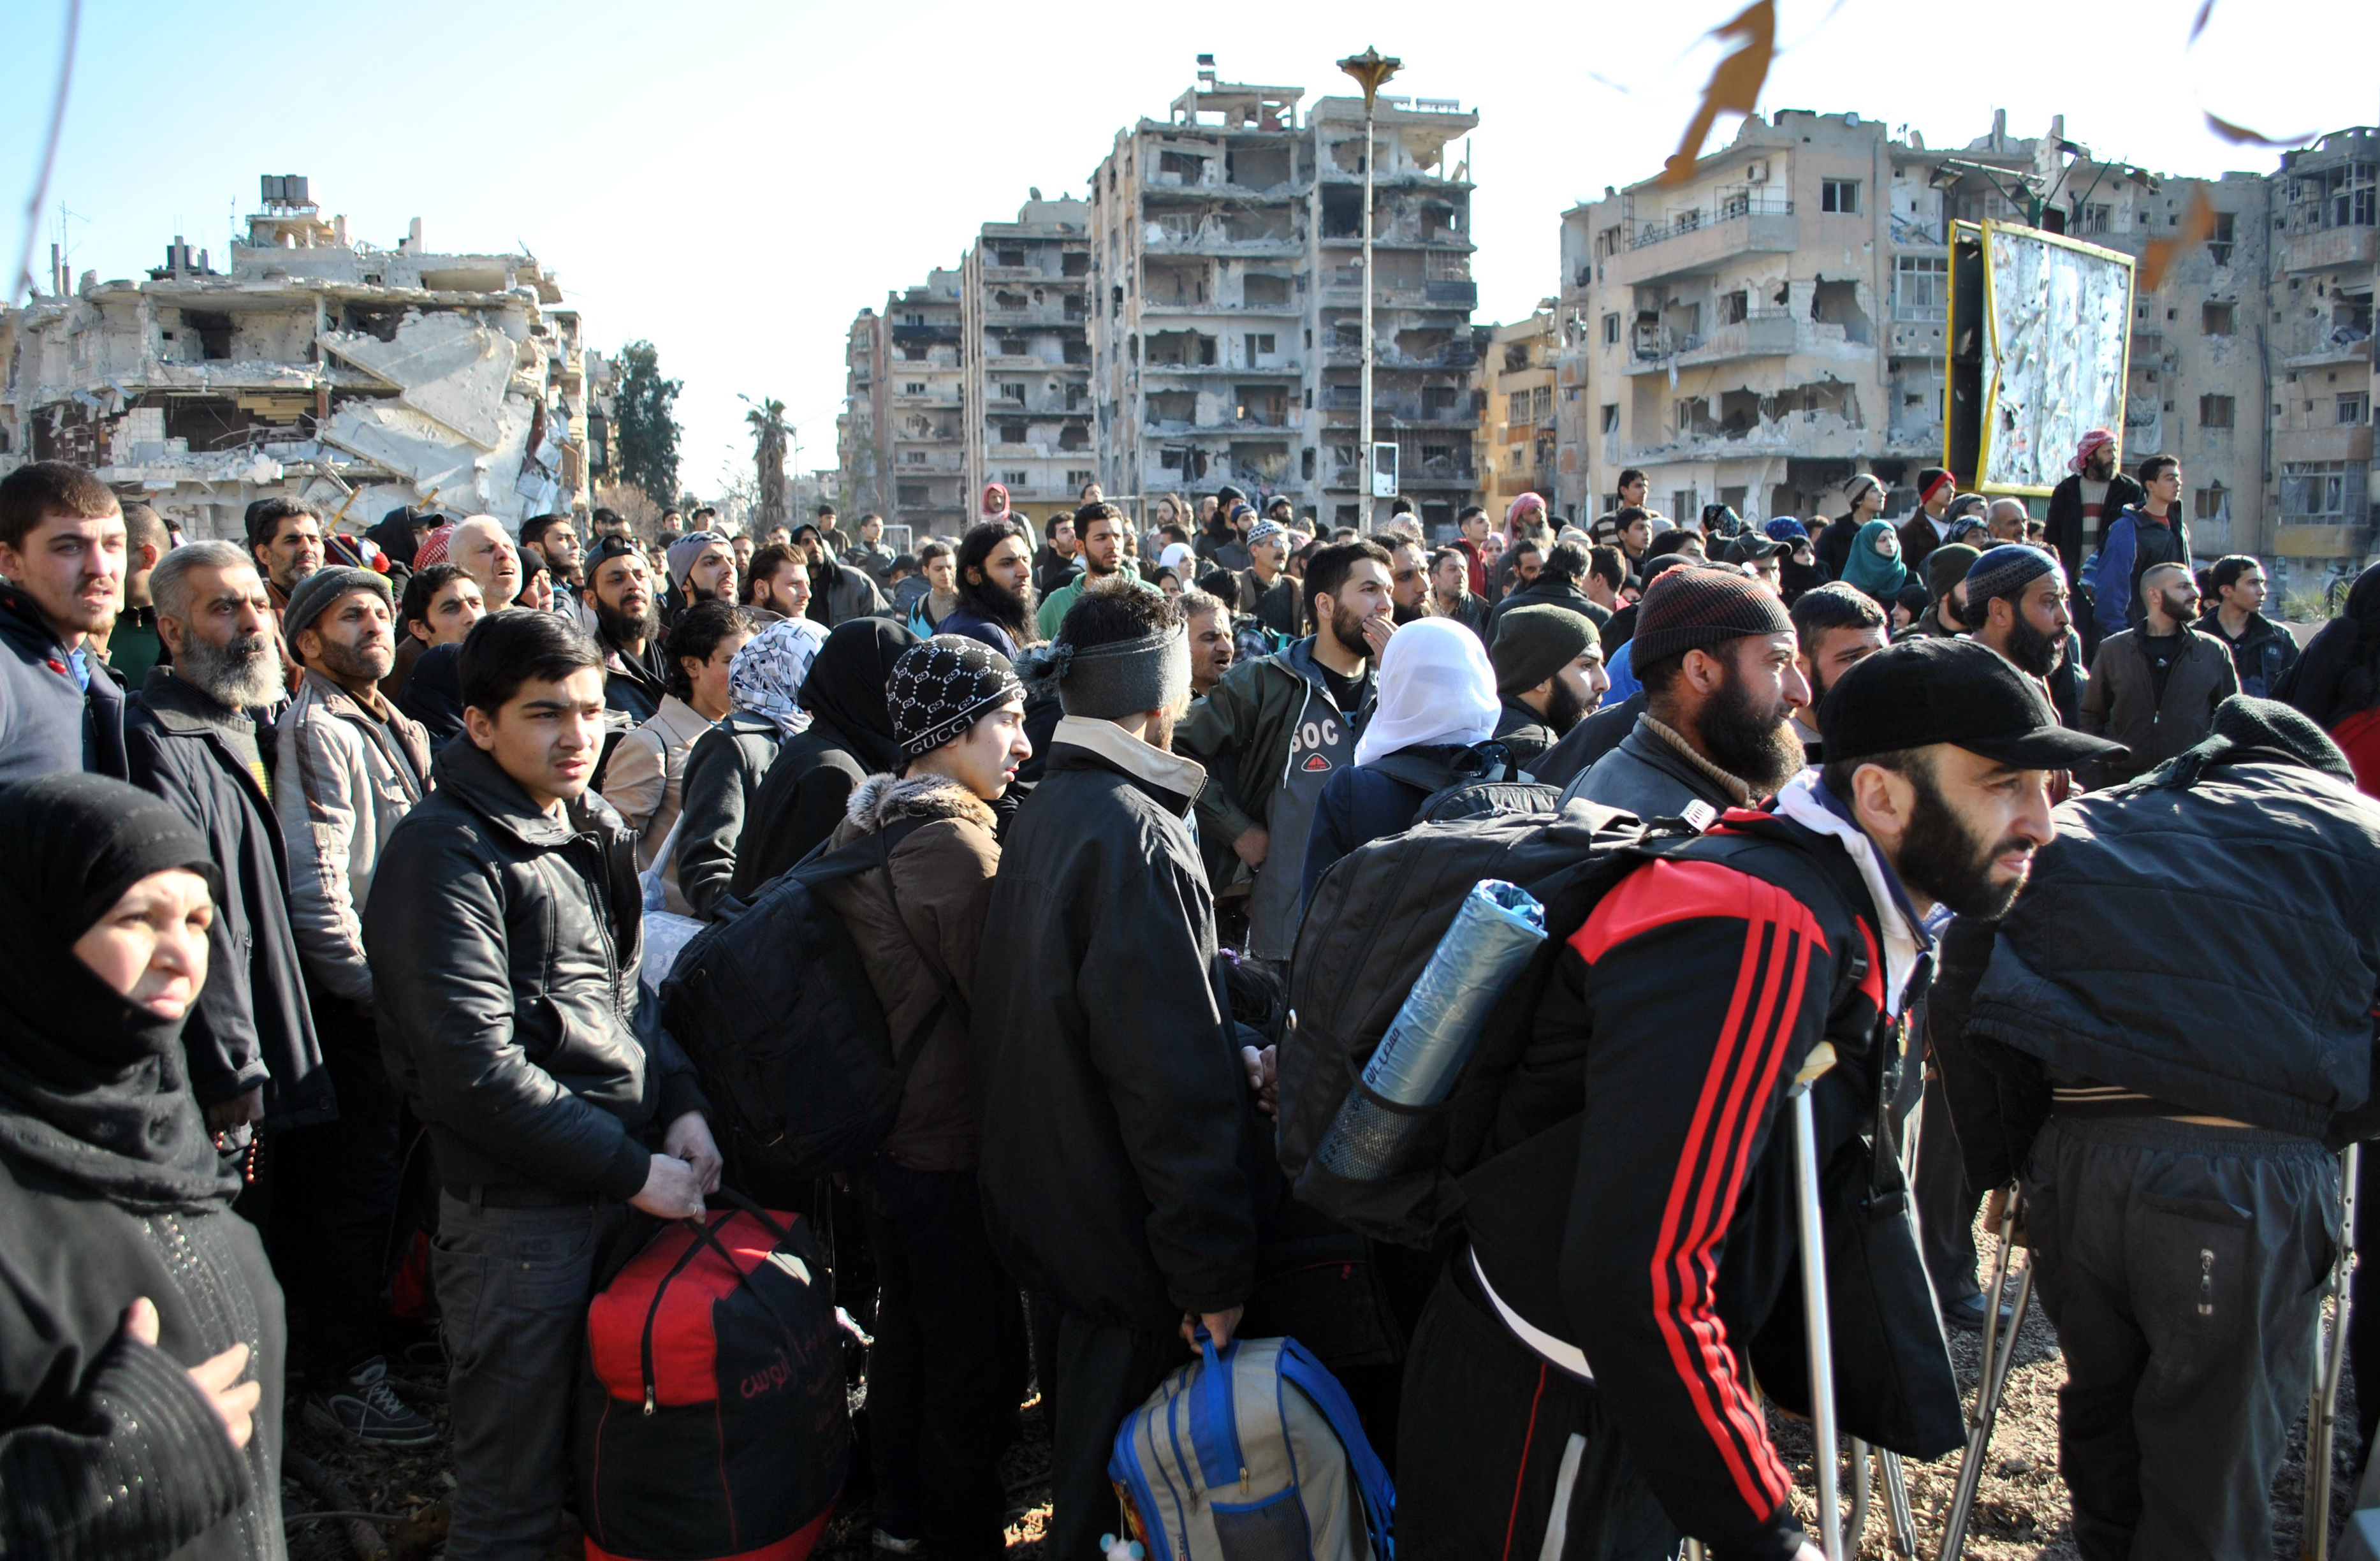 Civilians wait to be evacuated by United Nations staff from the central Syrian city of Homs on Feb. 9, 2014. Photo by Bassel Tawil/AFP/Getty Images